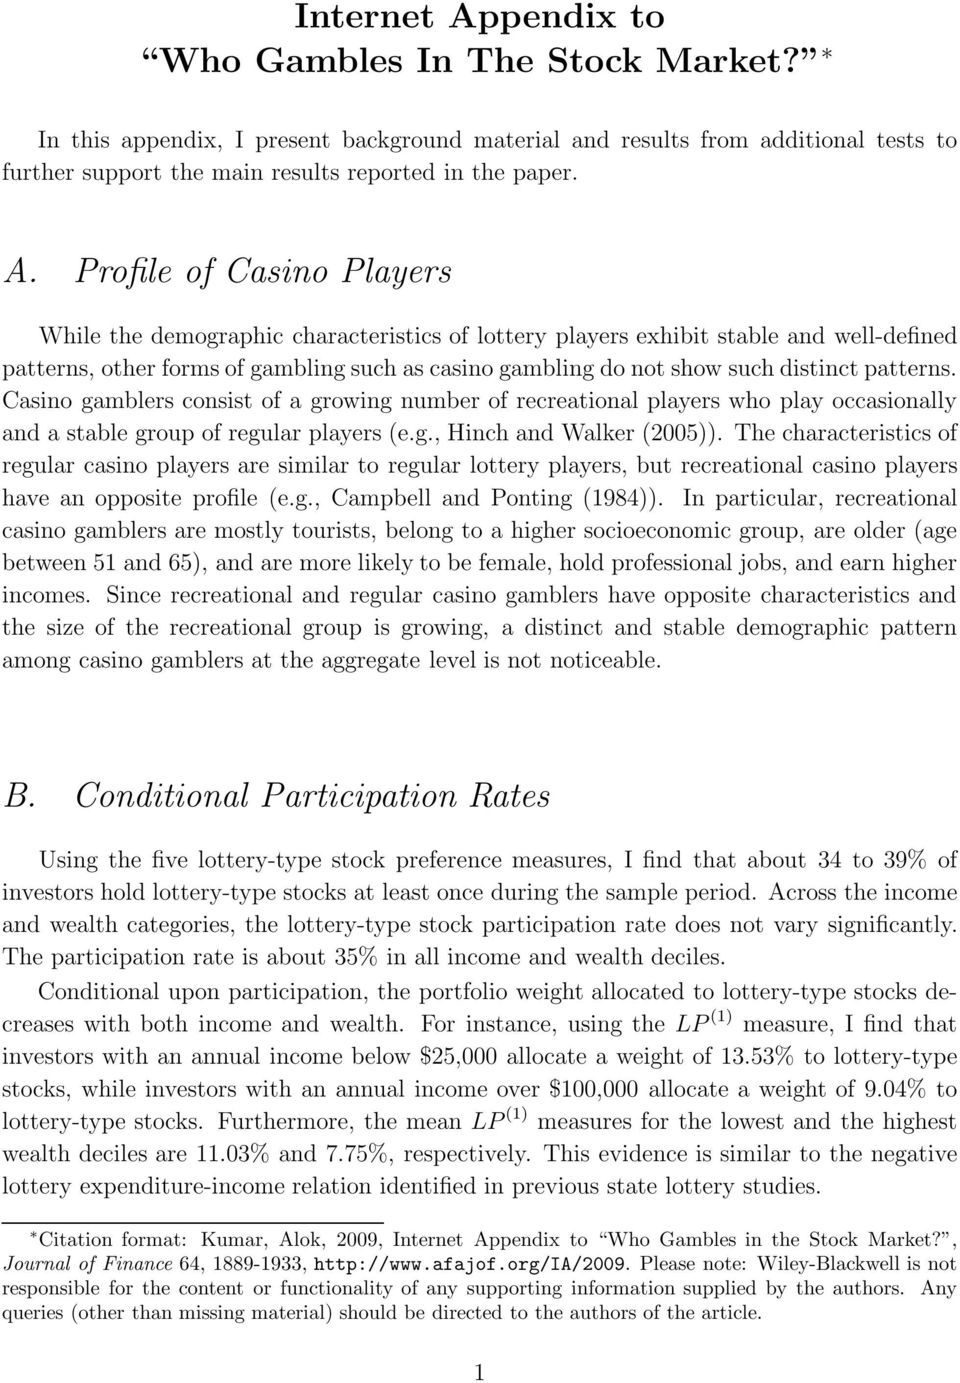 Profile of Casino Players While the demographic characteristics of lottery players exhibit stable and well-defined patterns, other forms of gambling such as casino gambling do not show such distinct